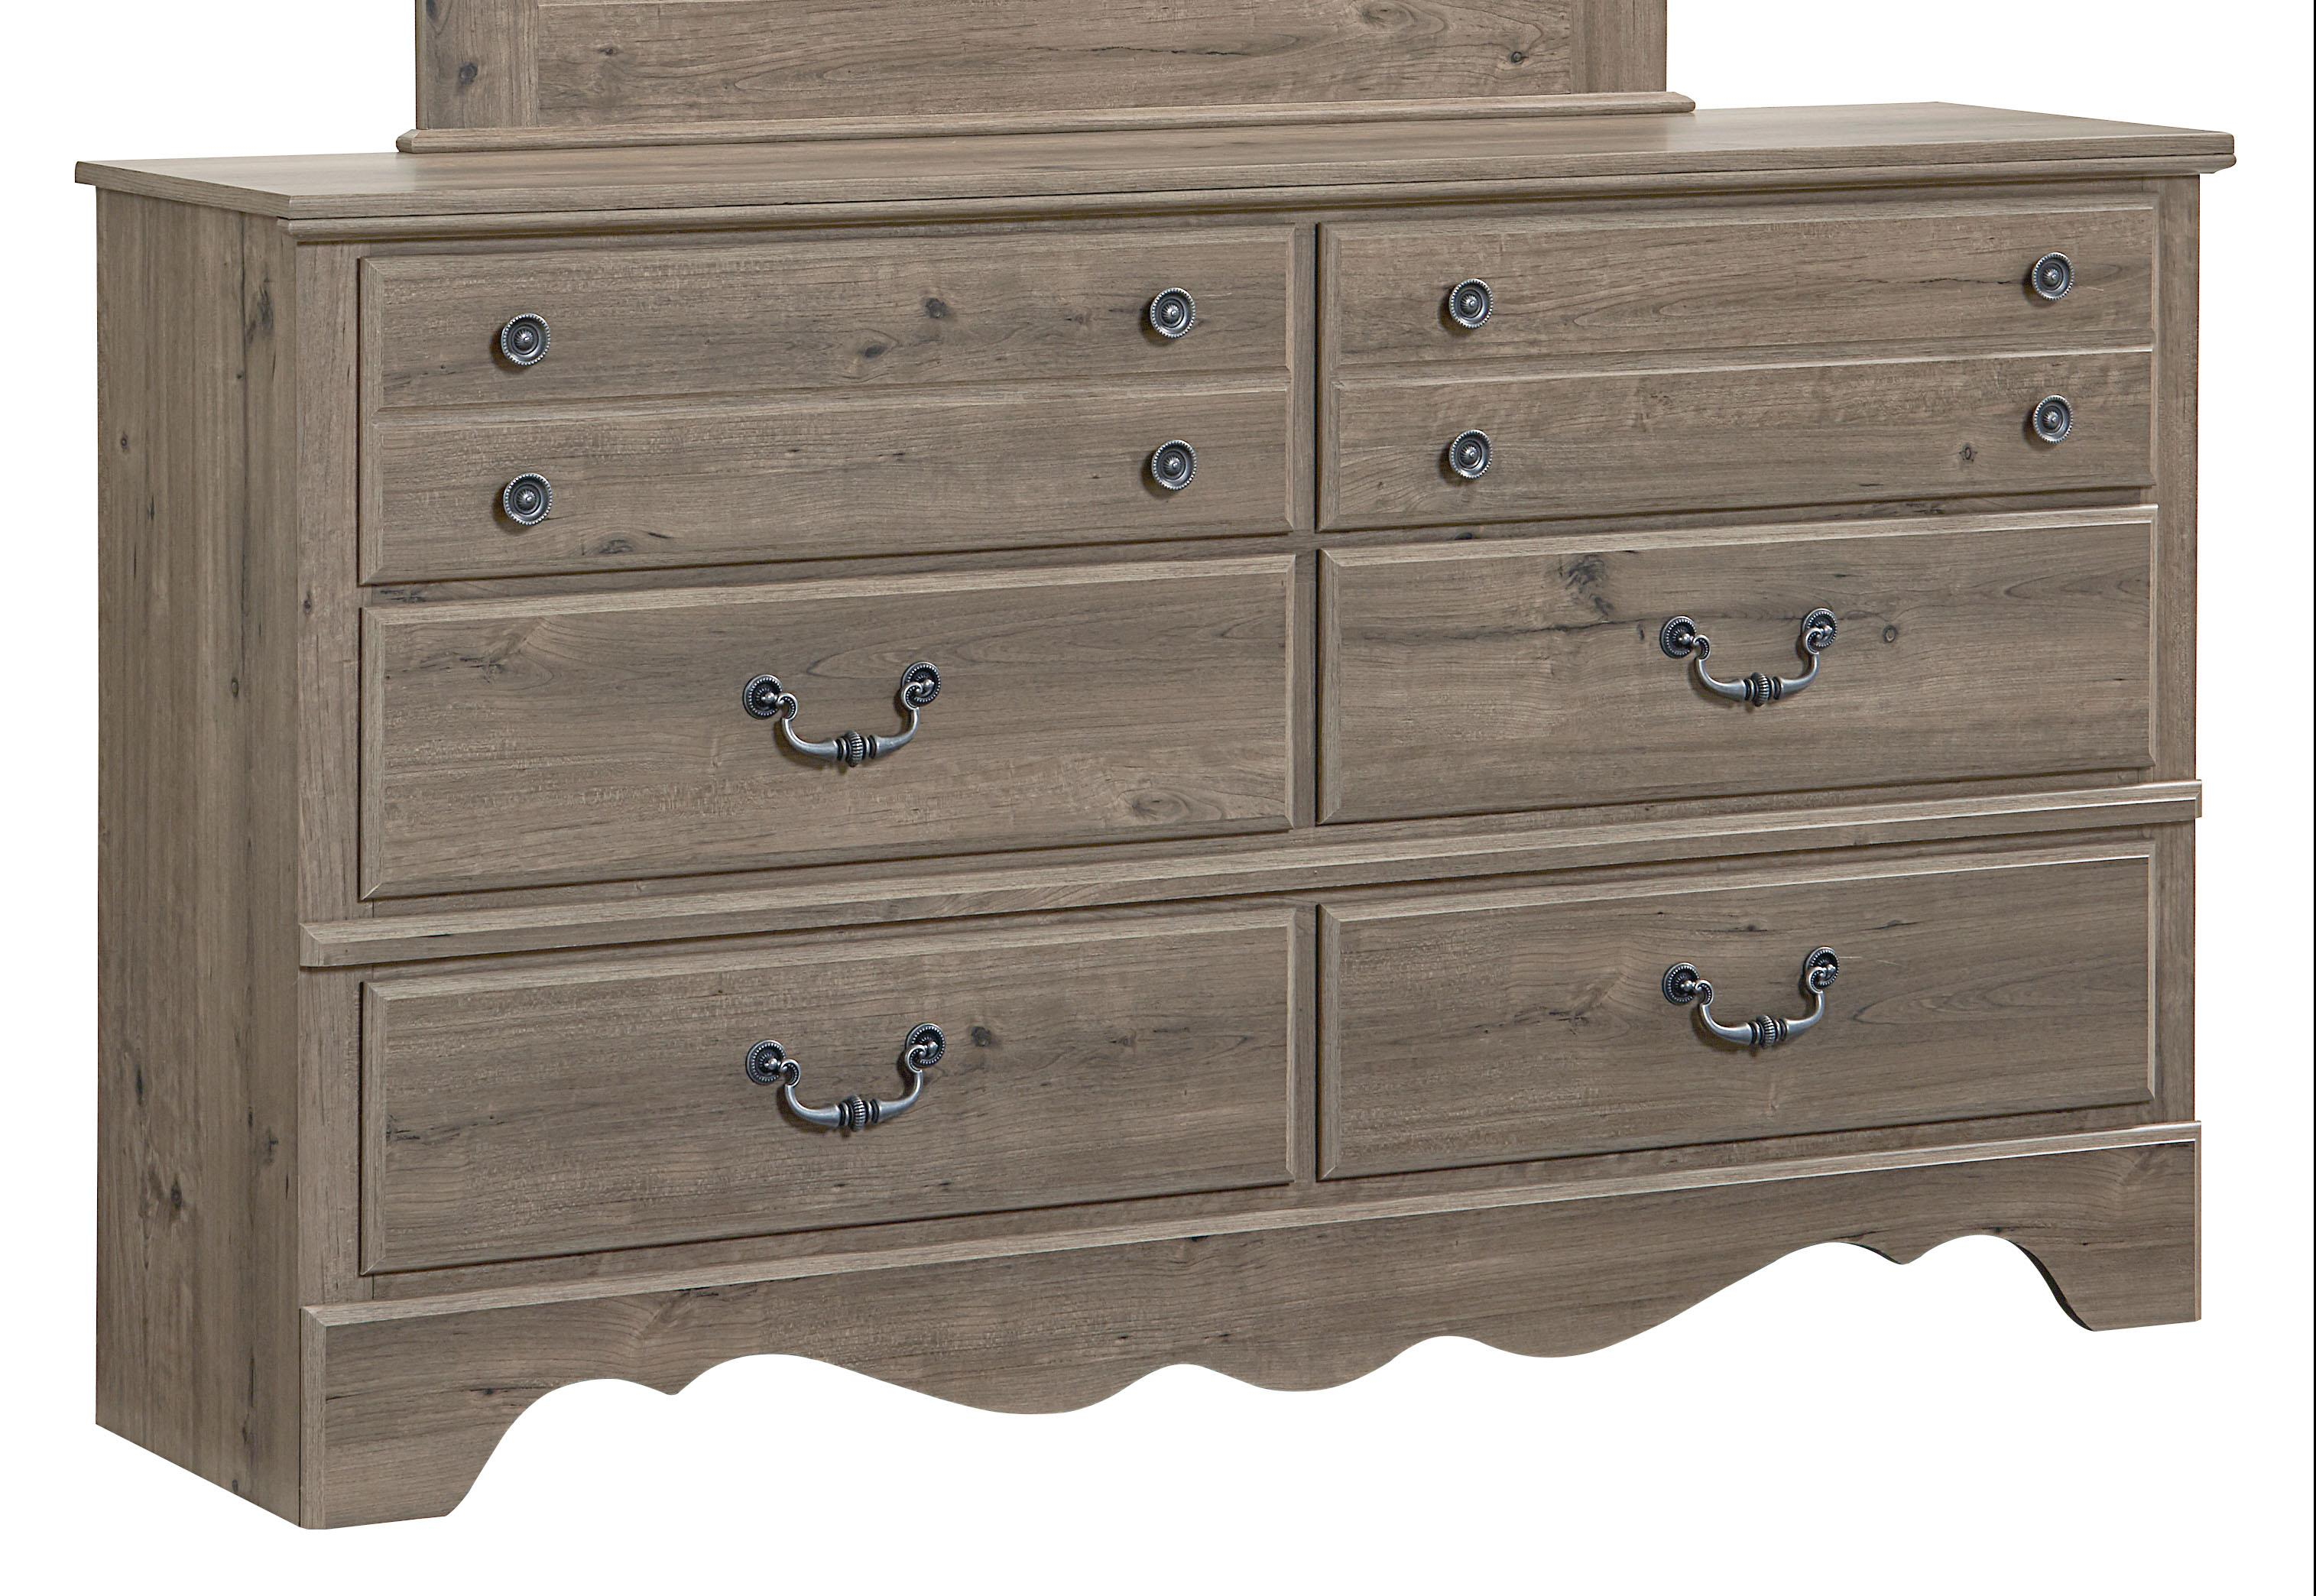 Standard Furniture Timber Creek Traditional Dresser With Six Drawers Knight Furniture